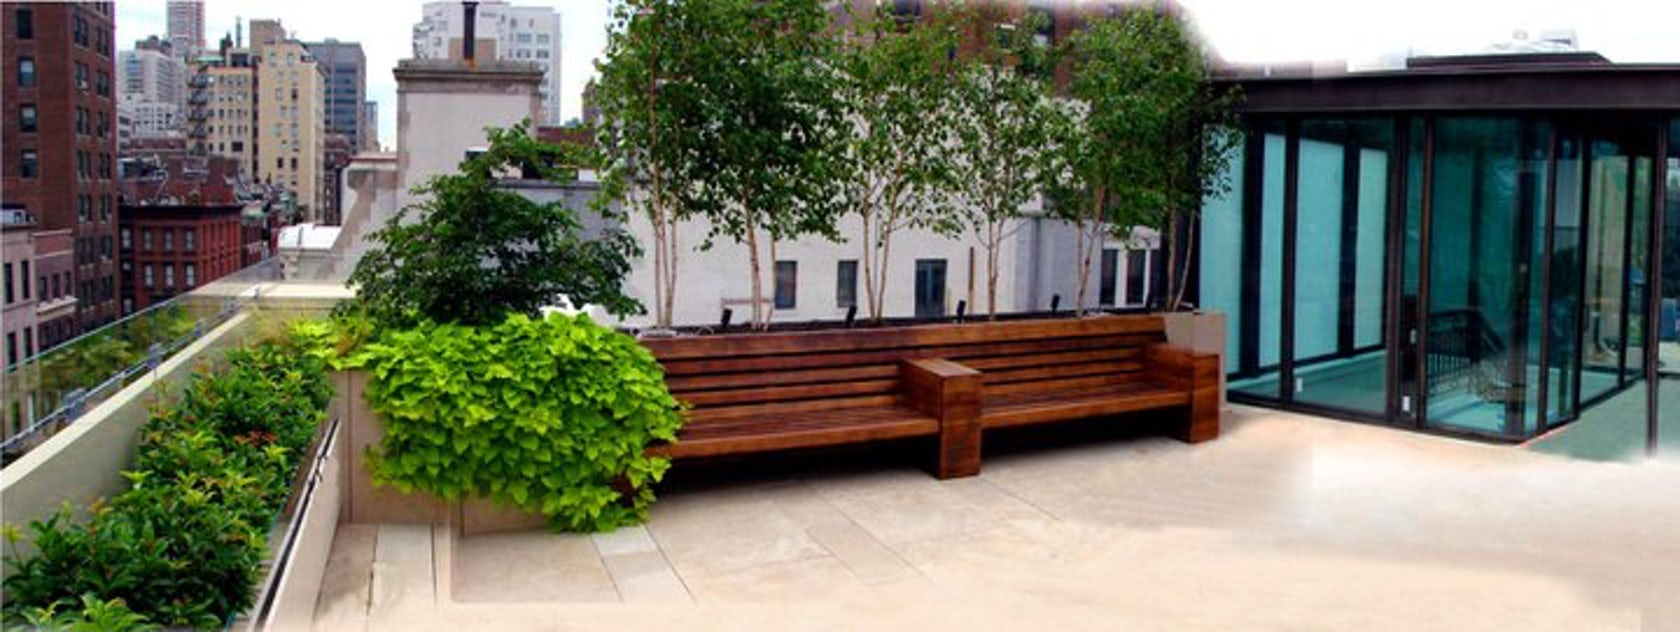 nyc roof deck park avenue terrace with limestone patio architizer. Black Bedroom Furniture Sets. Home Design Ideas